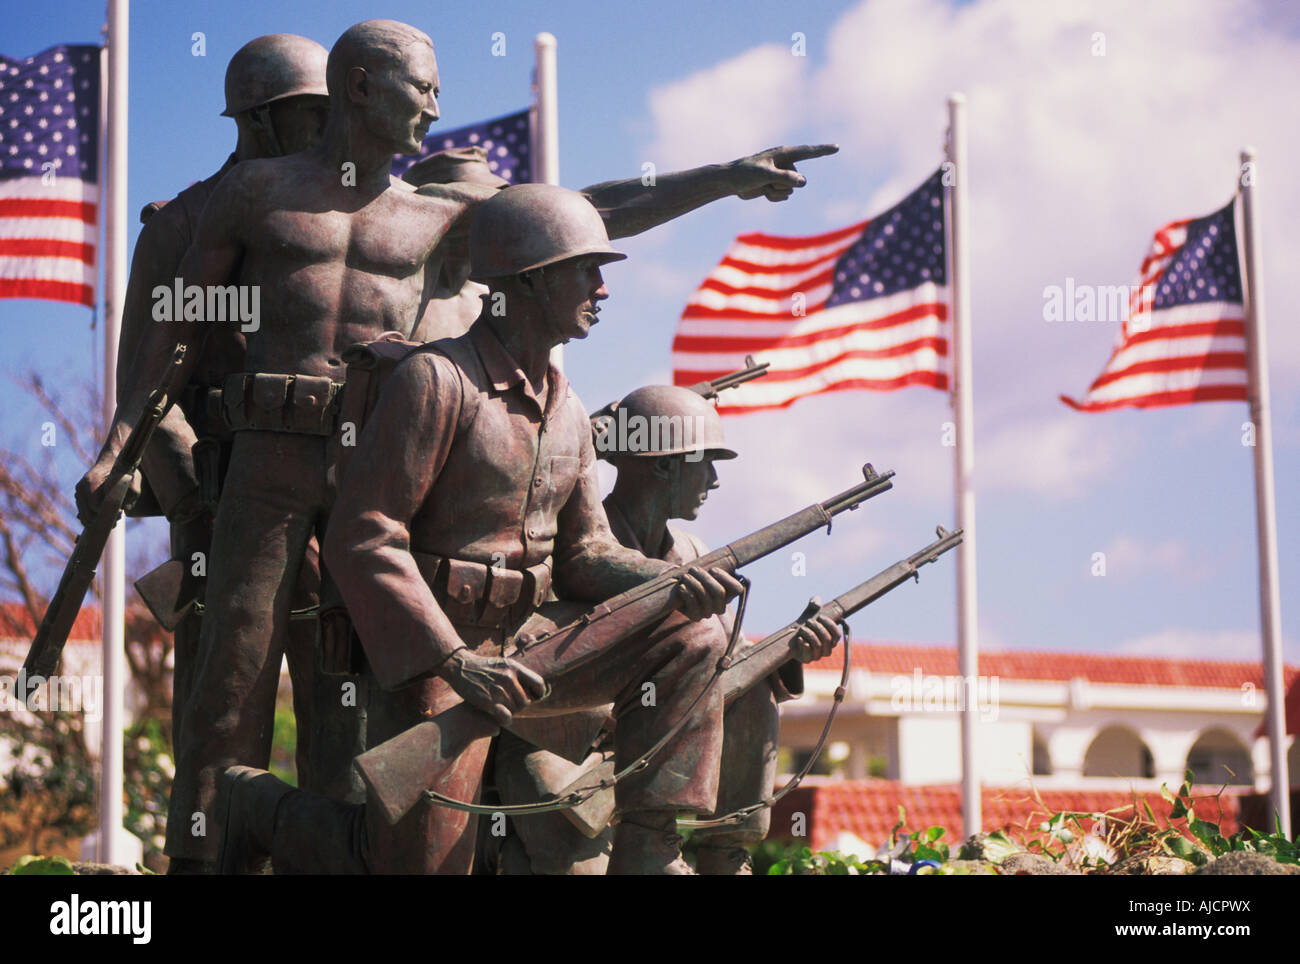 Governor 's Offices Statue in Agana located in Guam Micronesia - Stock Image